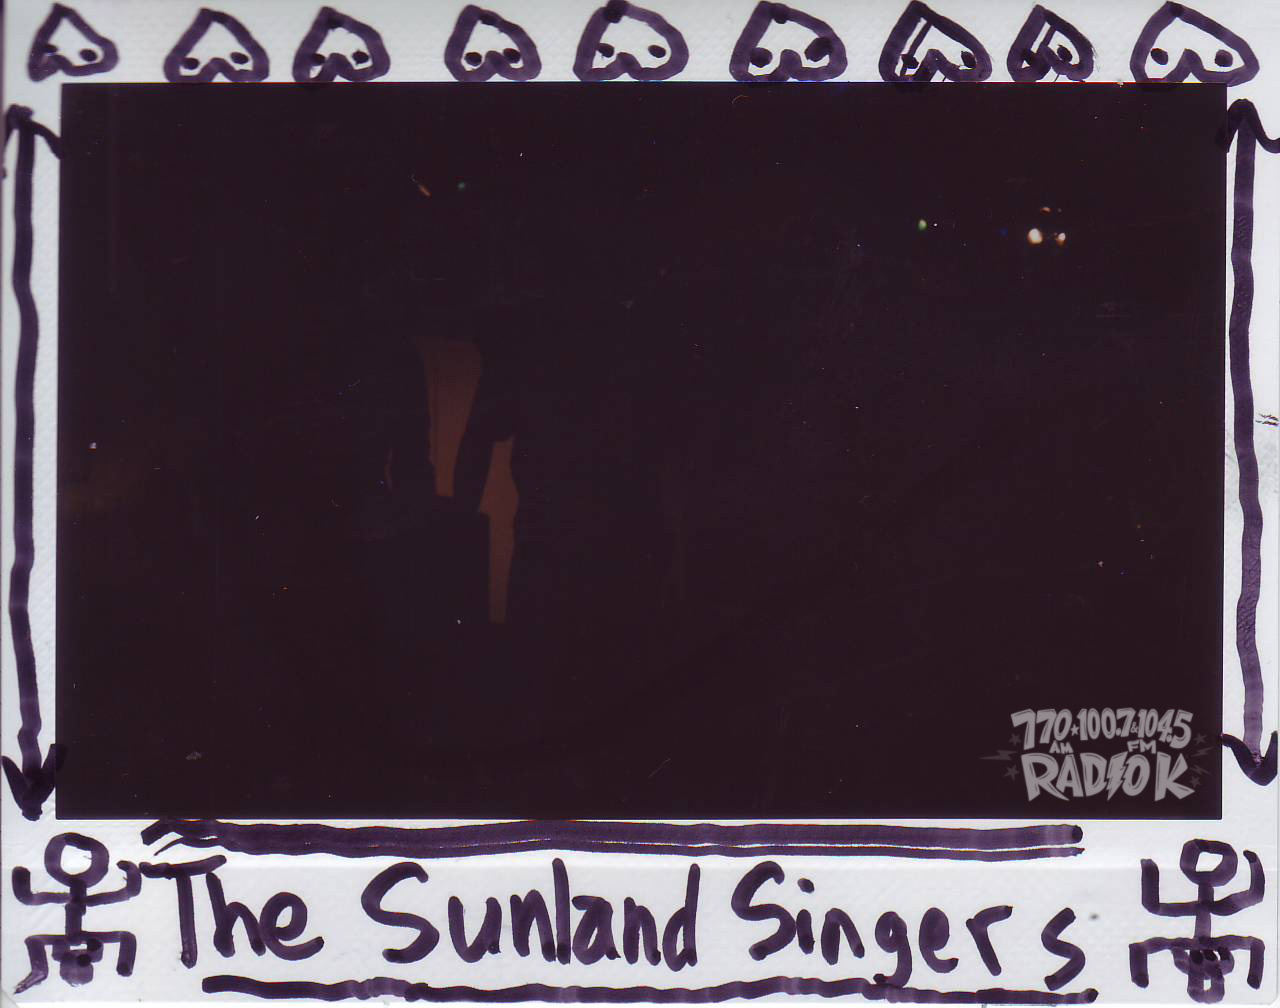 The Sunland Singers